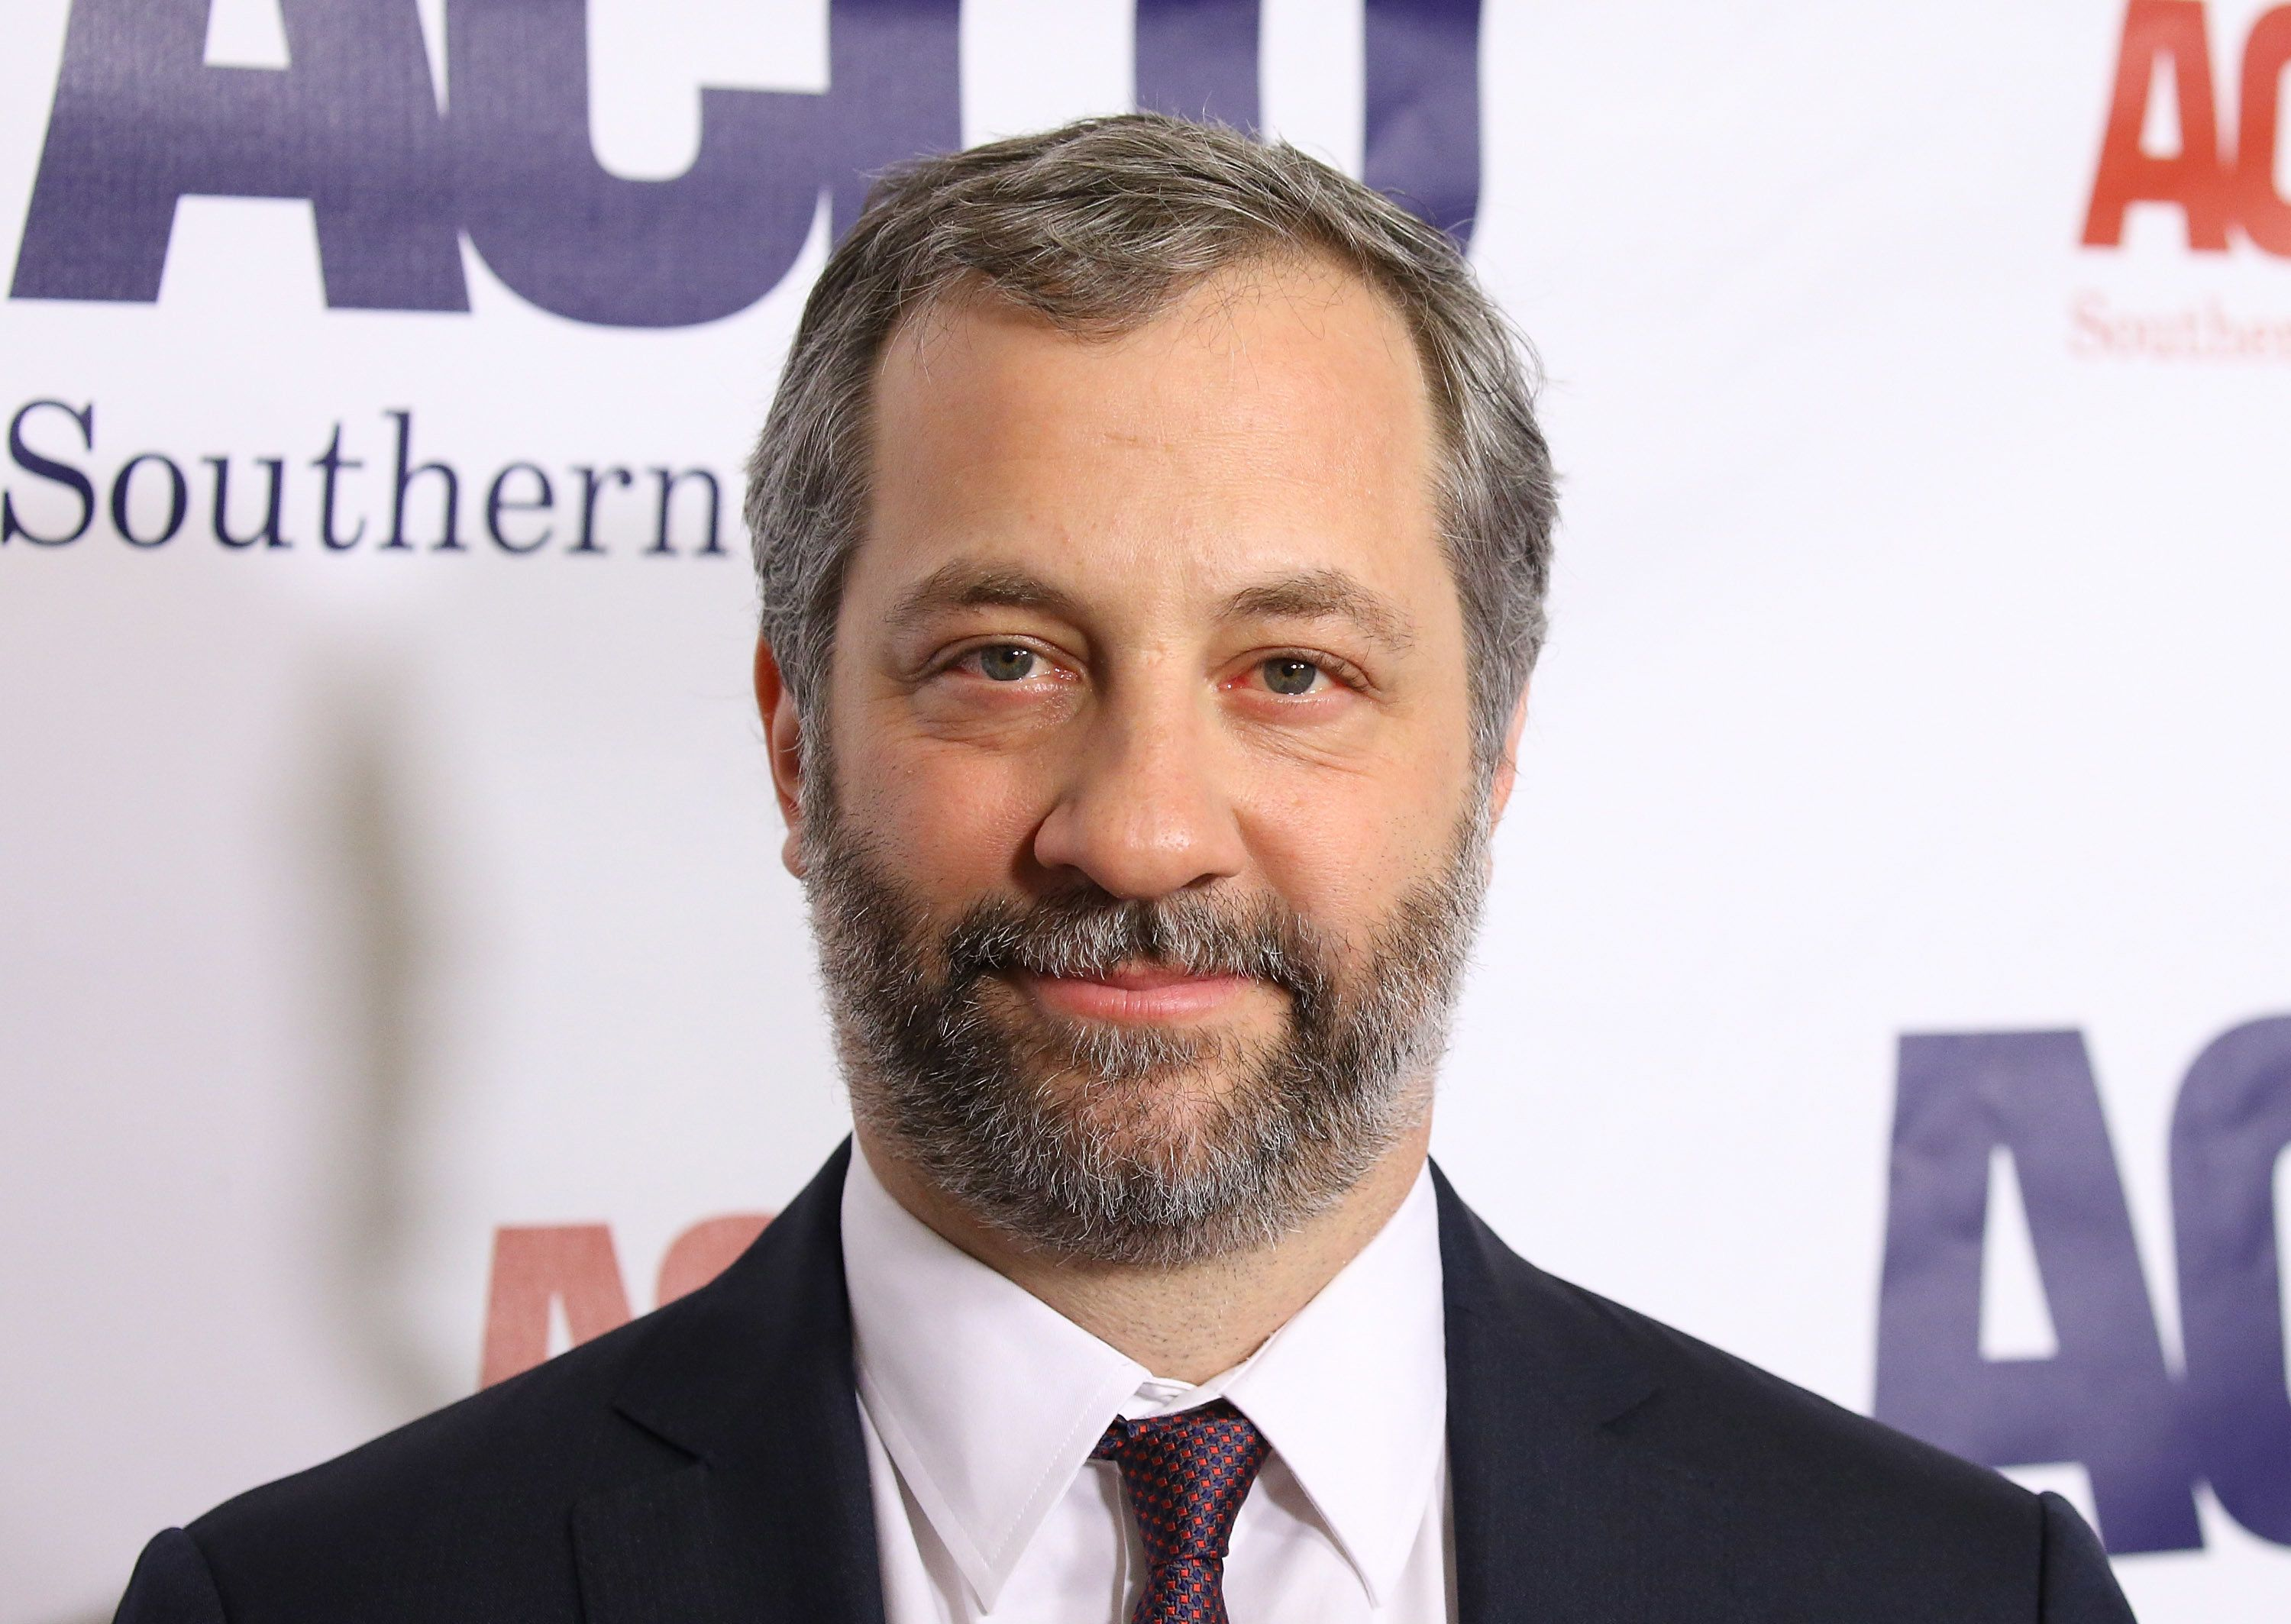 BEVERLY HILLS, CA - DECEMBER 03:  Judd Apatow arrives to the ACLU SoCal's Annual Bill of Rights dinner held at the Beverly Wilshire Four Seasons Hotel on December 3, 2017 in Beverly Hills, California.  (Photo by Michael Tran/FilmMagic)